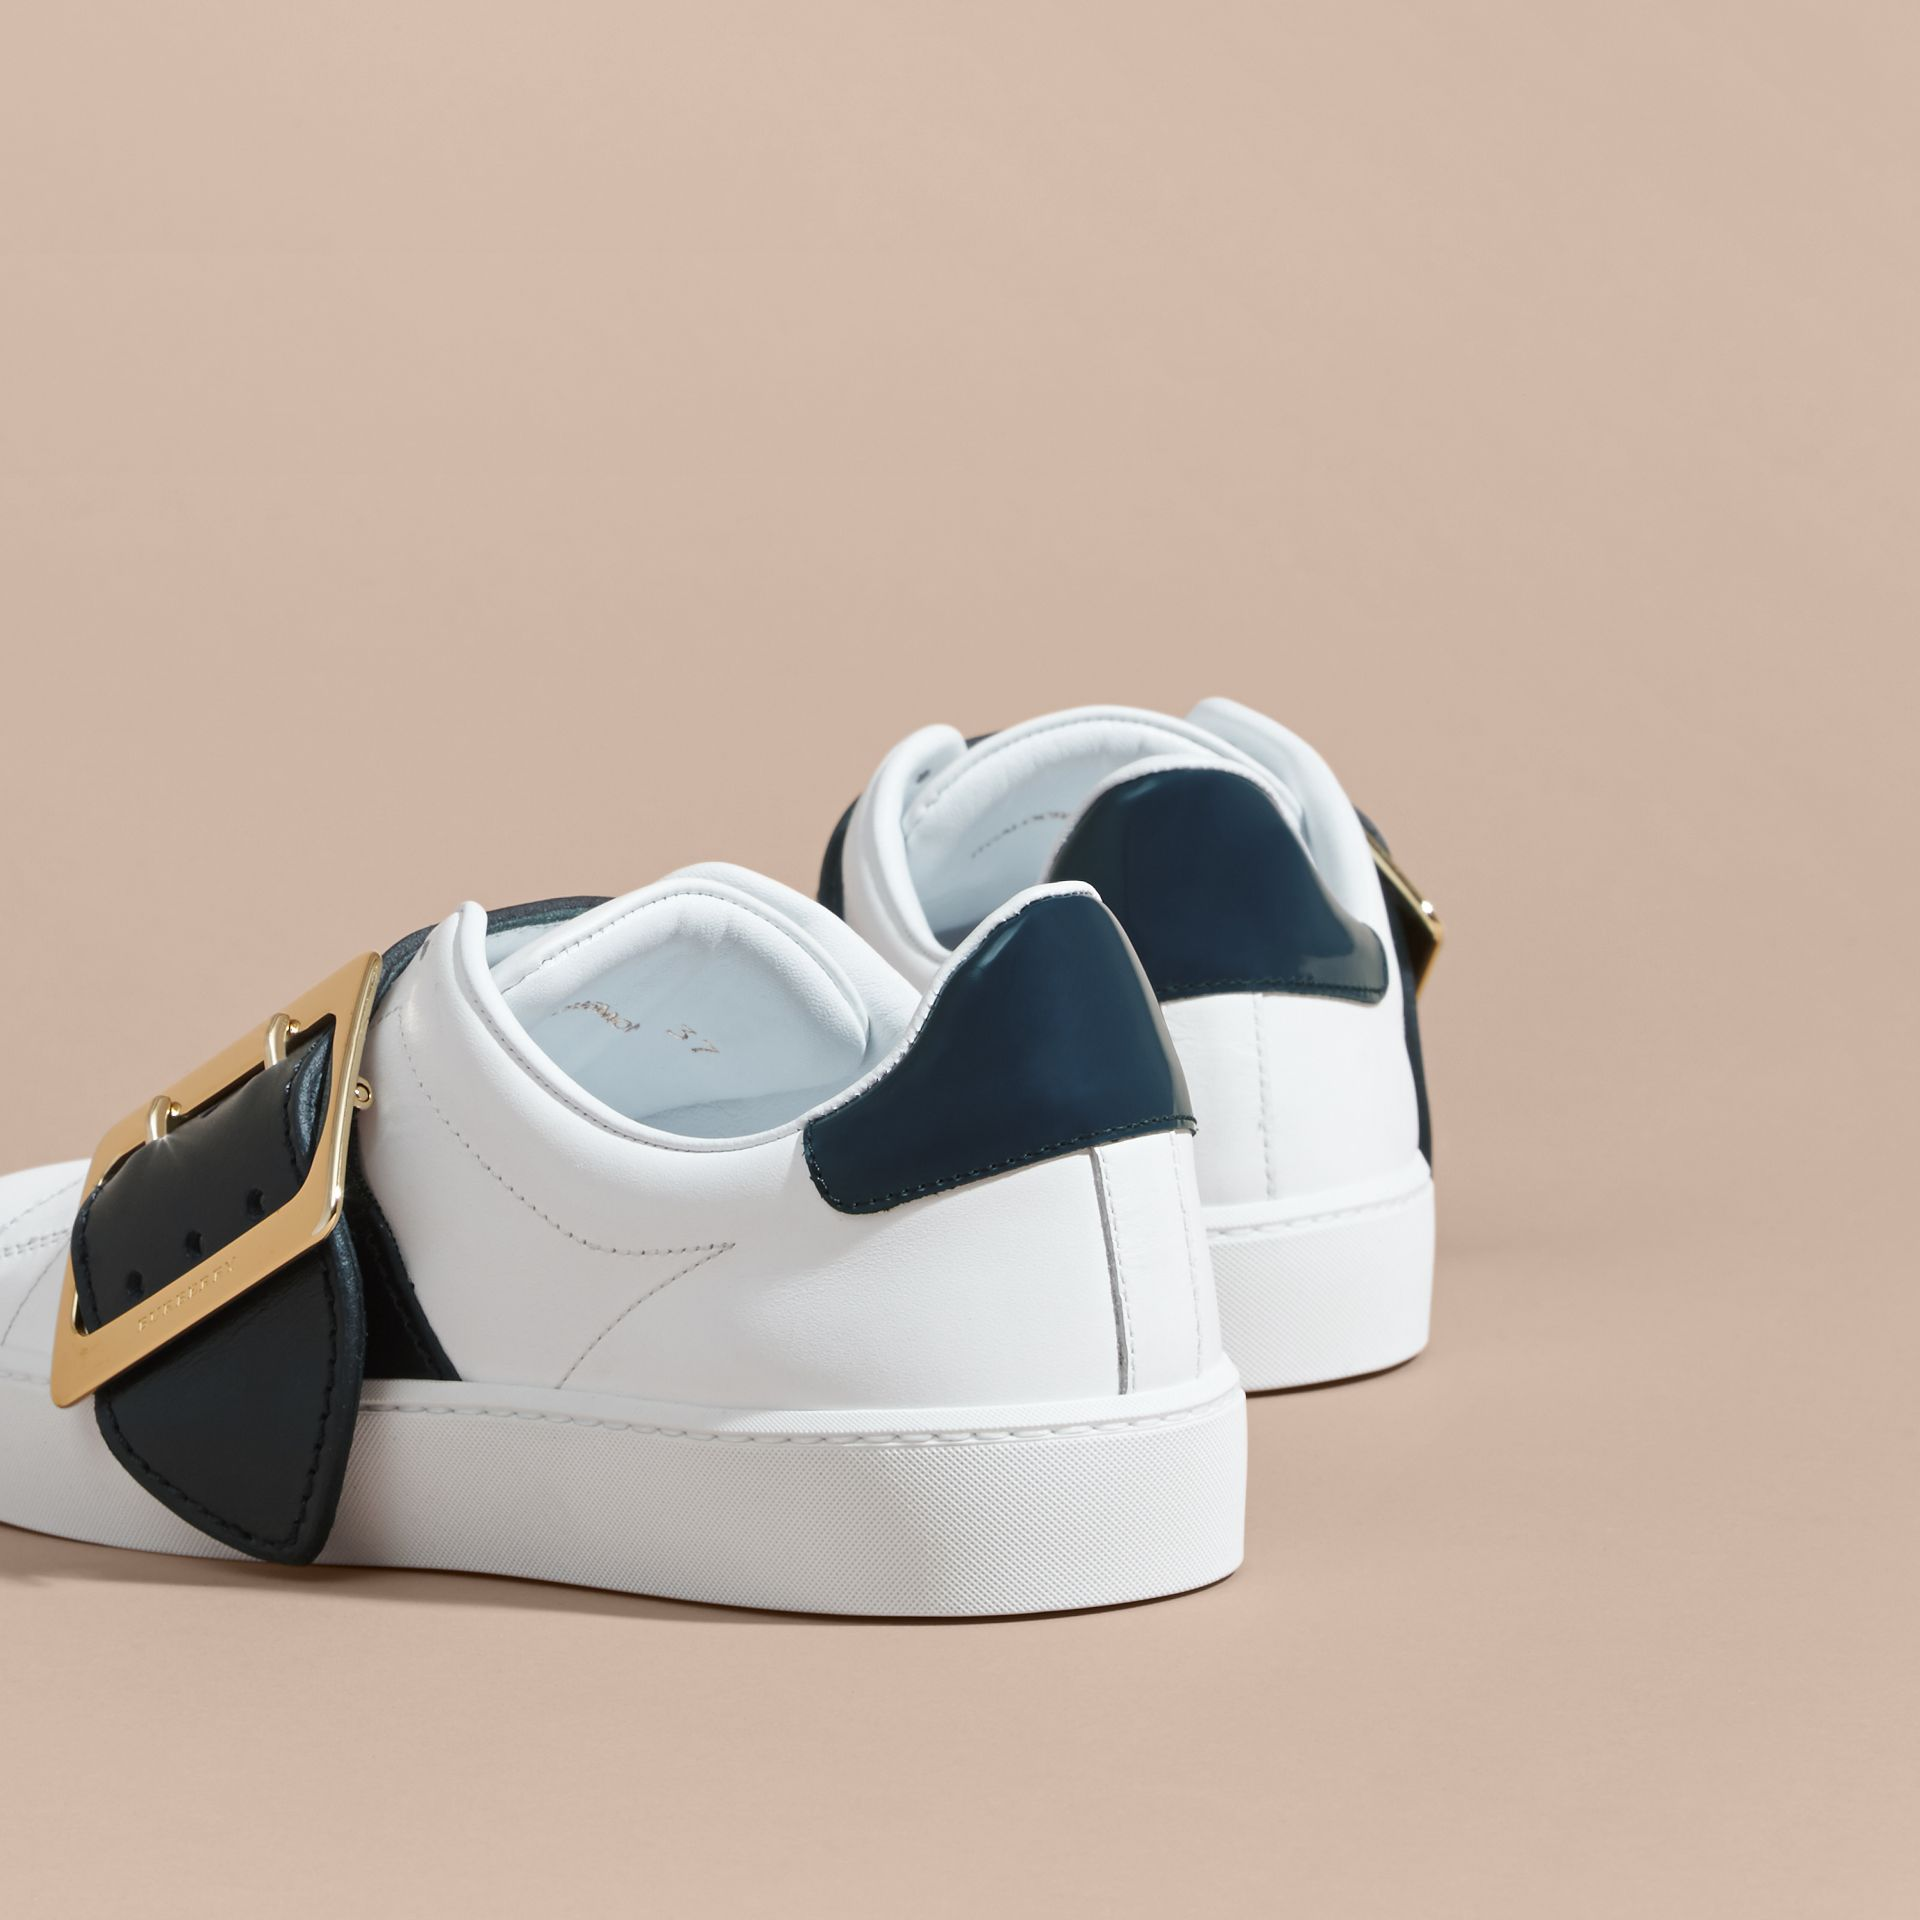 Optic white/navy Buckle Detail Leather Trainers Optic White/navy - gallery image 4